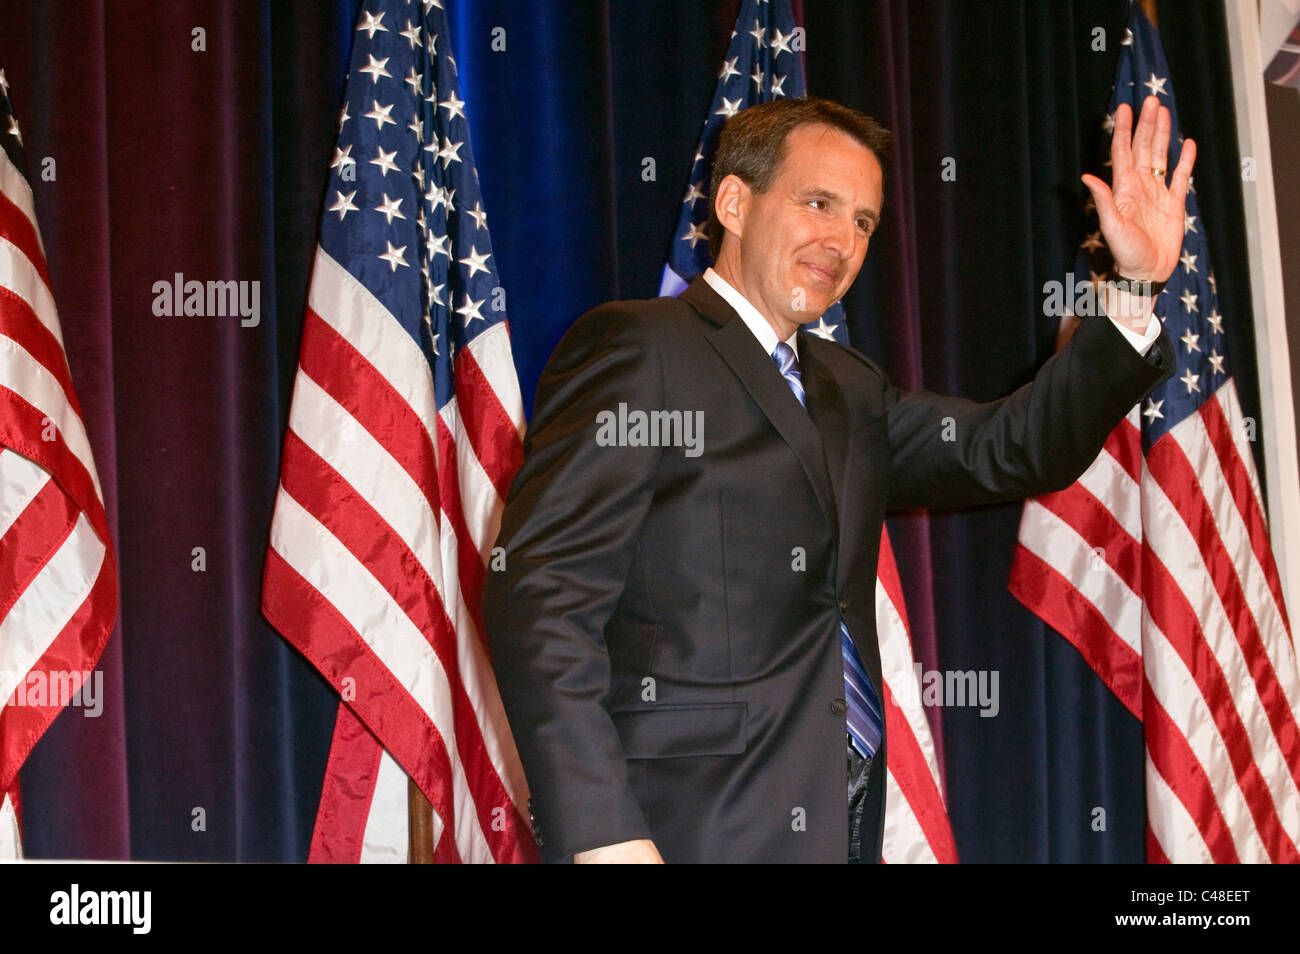 Tim Pawlenty at the Conservative Political Action Conference (CPAC) 2010 in Washington DC. - Stock Image